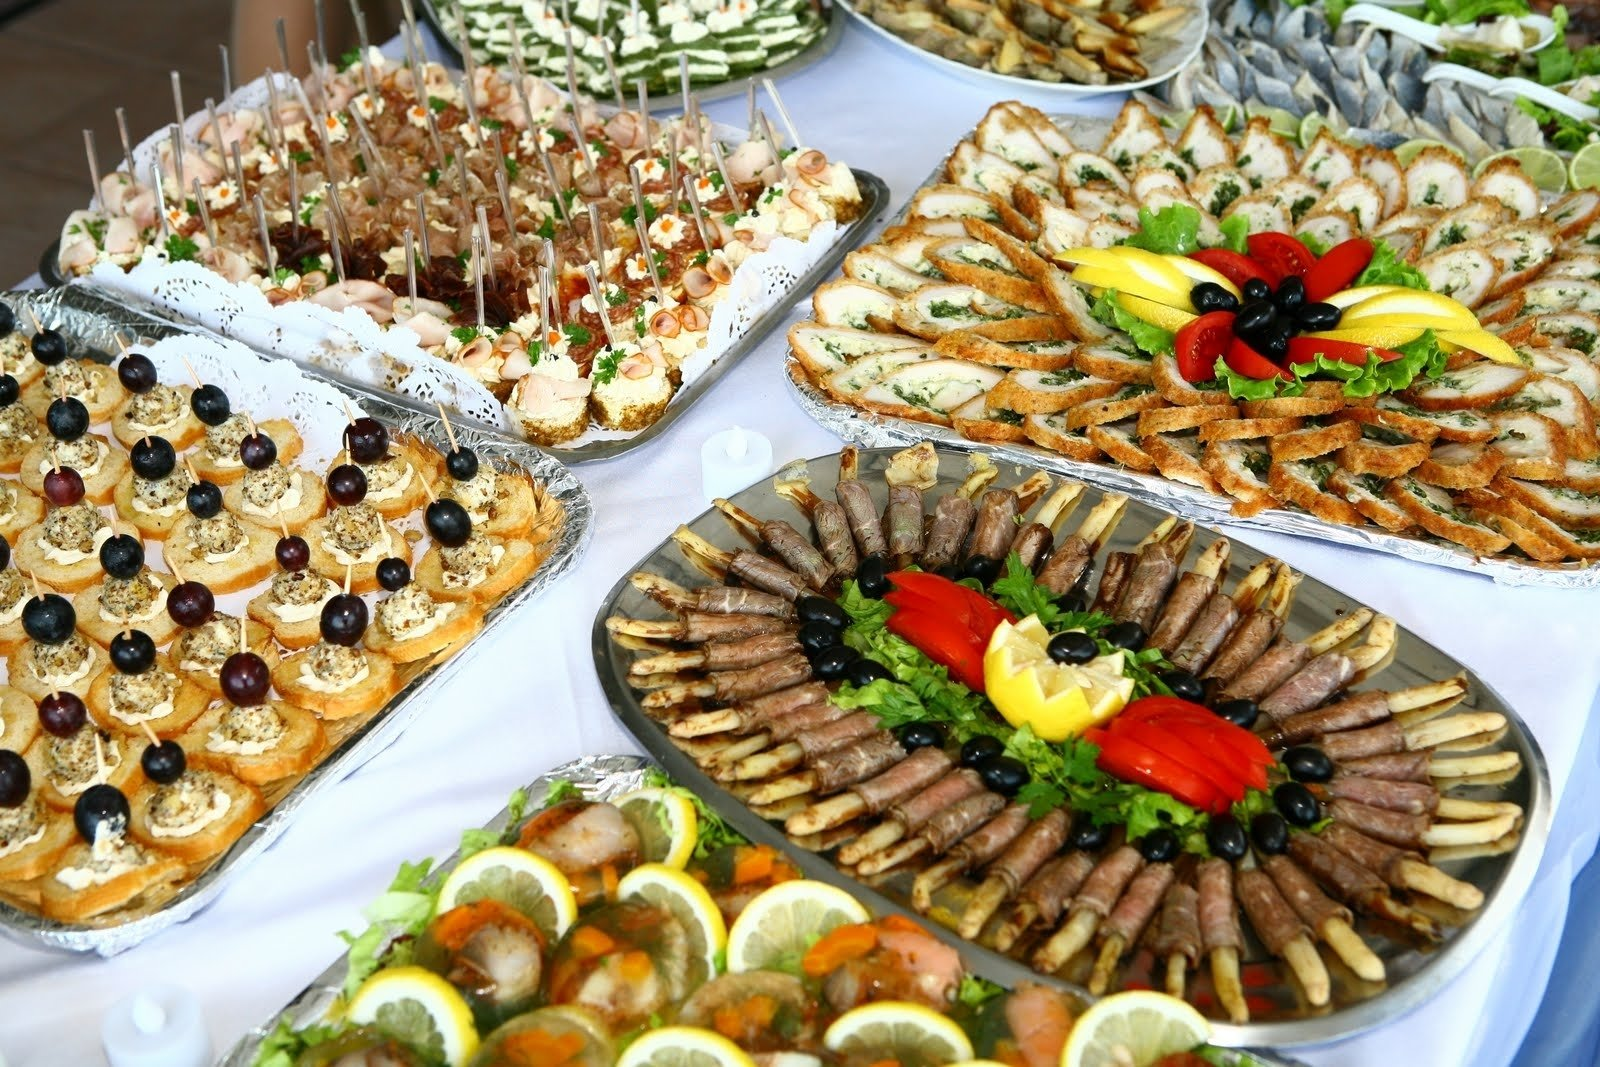 10 Fashionable Party Foods Ideas For Adults holiday ideas party ideas arranging the foods 1 2020